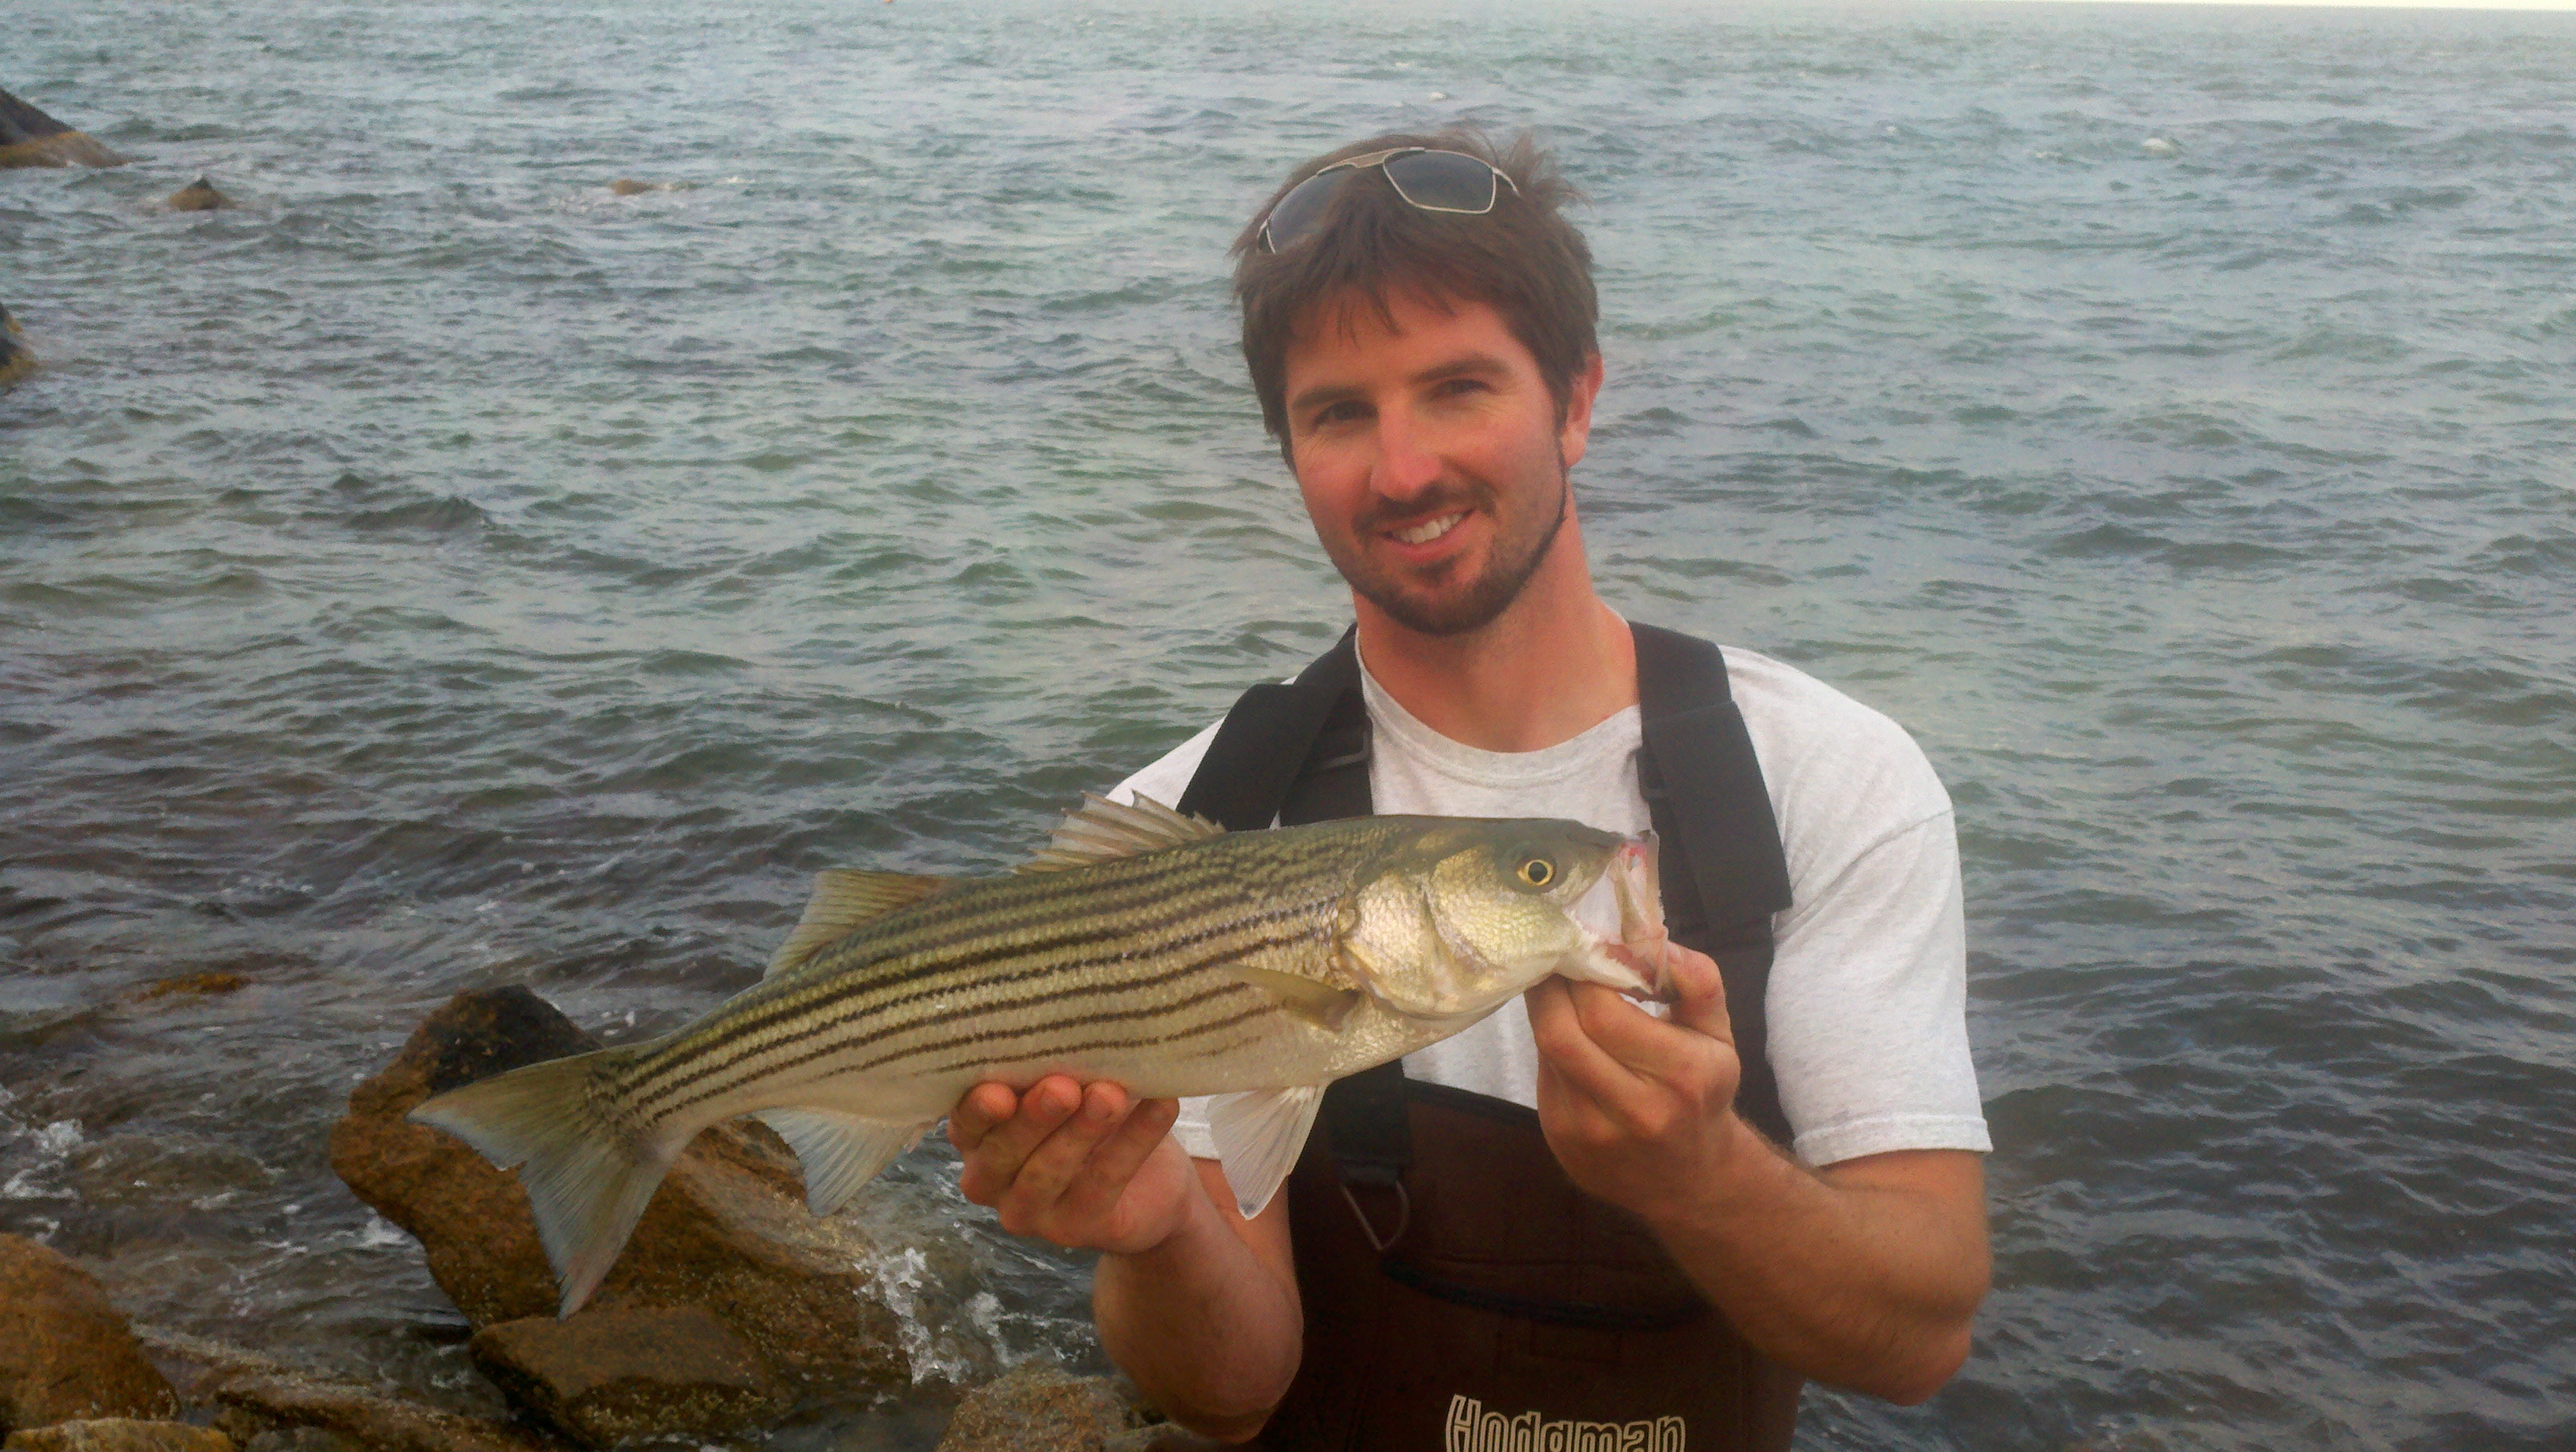 Cape cod surf fishing report for june 12 for Cape cod fishing